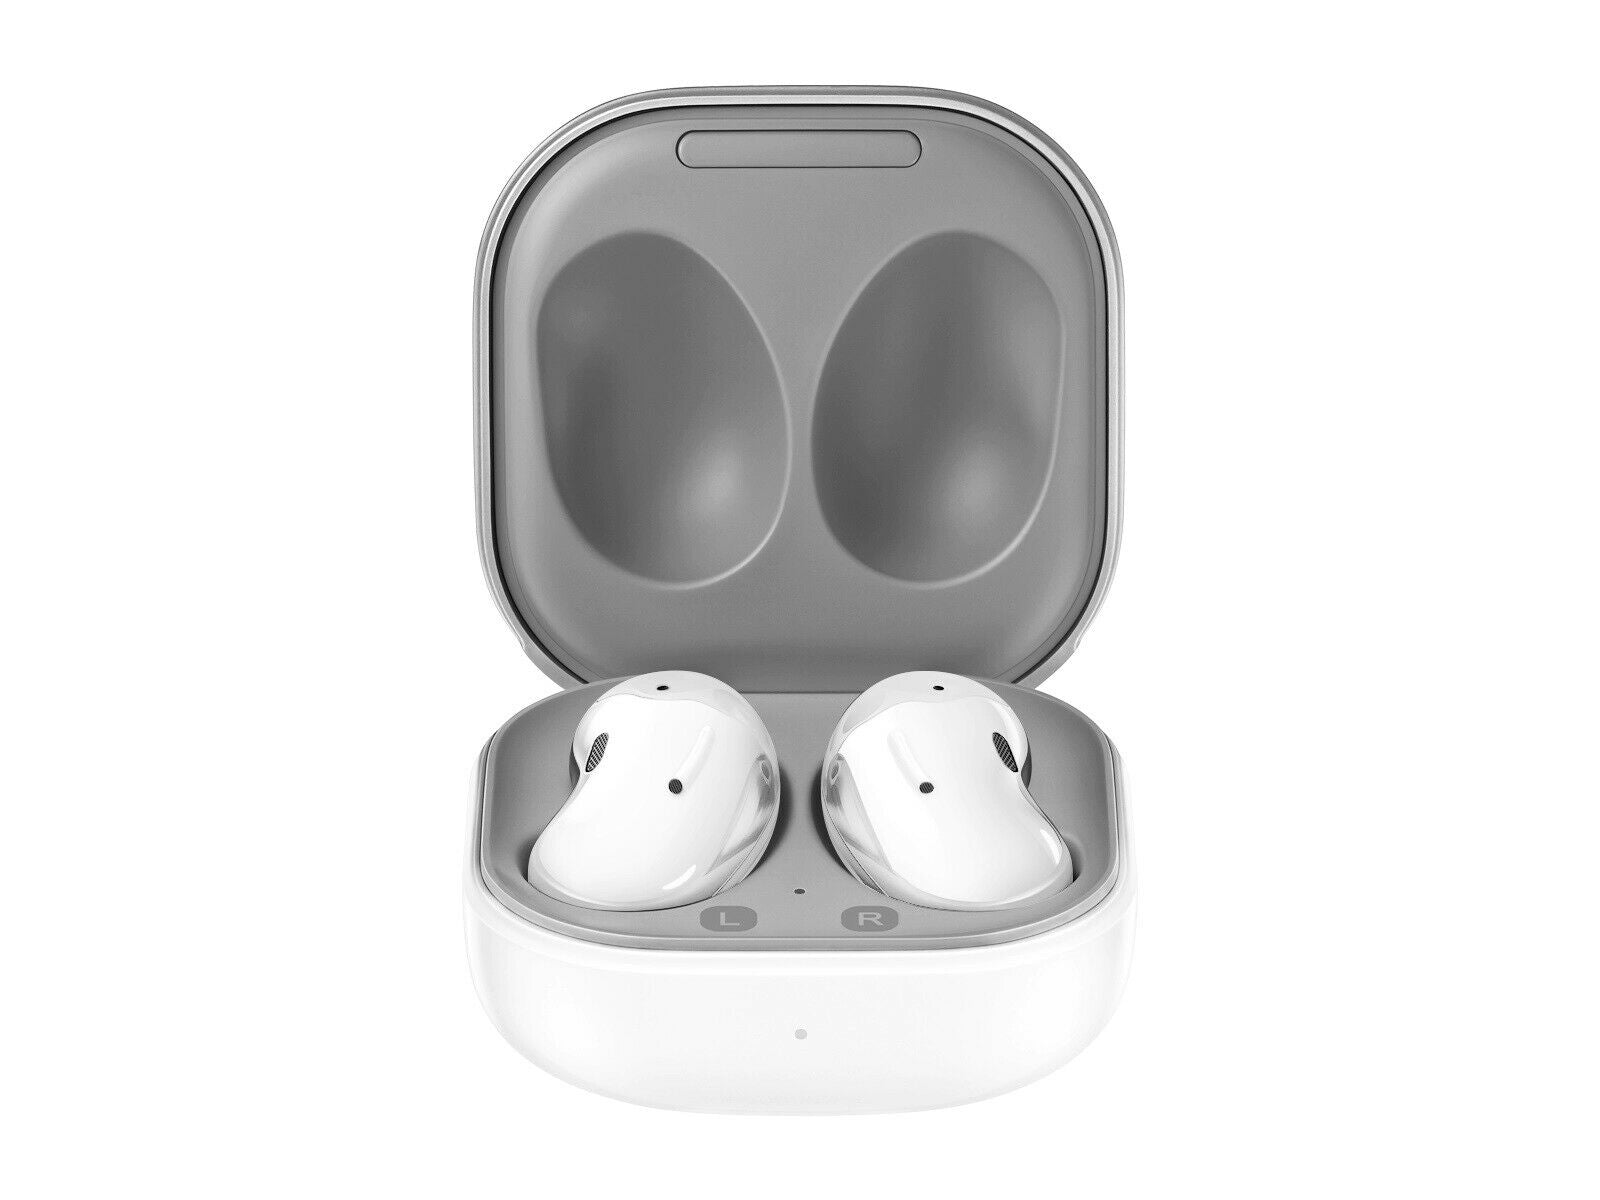 Samsung Galaxy Buds Live AKG Earphones (Brand New)